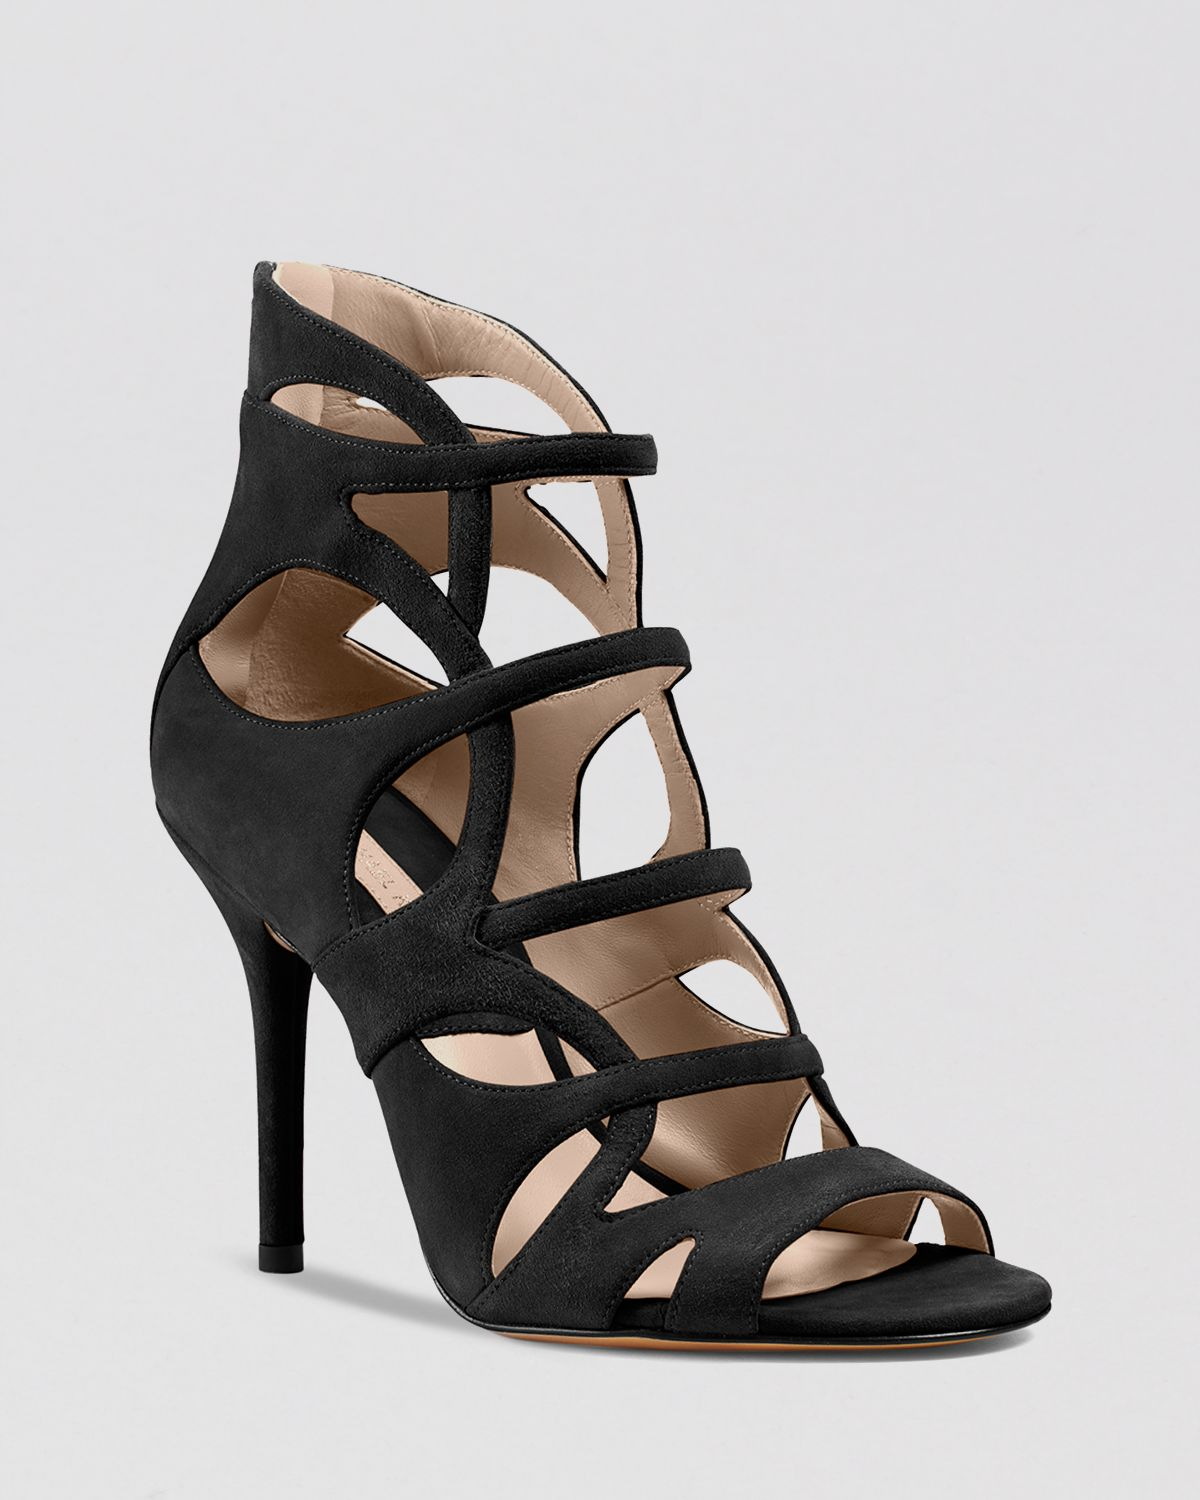 Michael kors Caged Sandals Casey Strappy High Heel in Black  Lyst